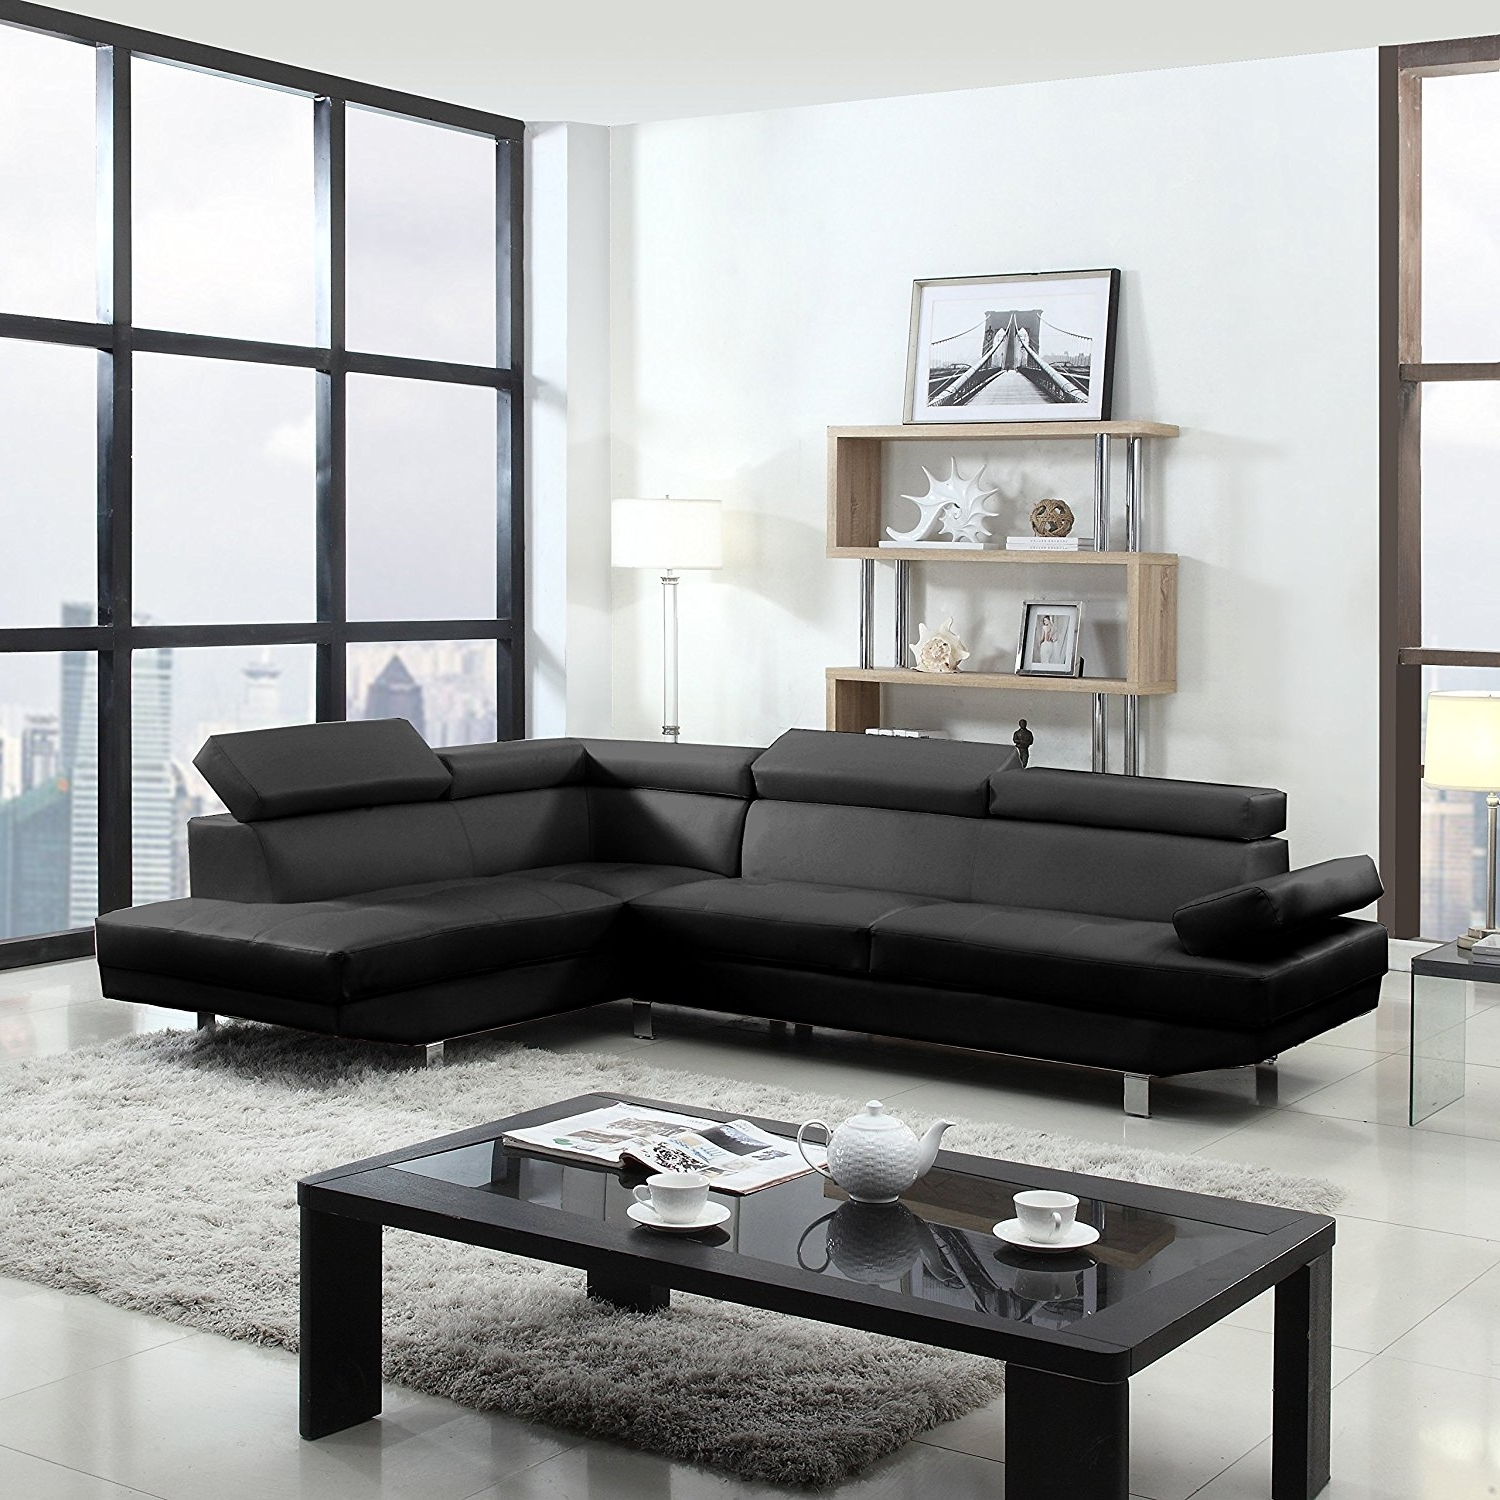 Most Recently Released Black And White Sofas Within Amazon: 2 Piece Modern Contemporary Faux Leather Sectional (View 5 of 15)